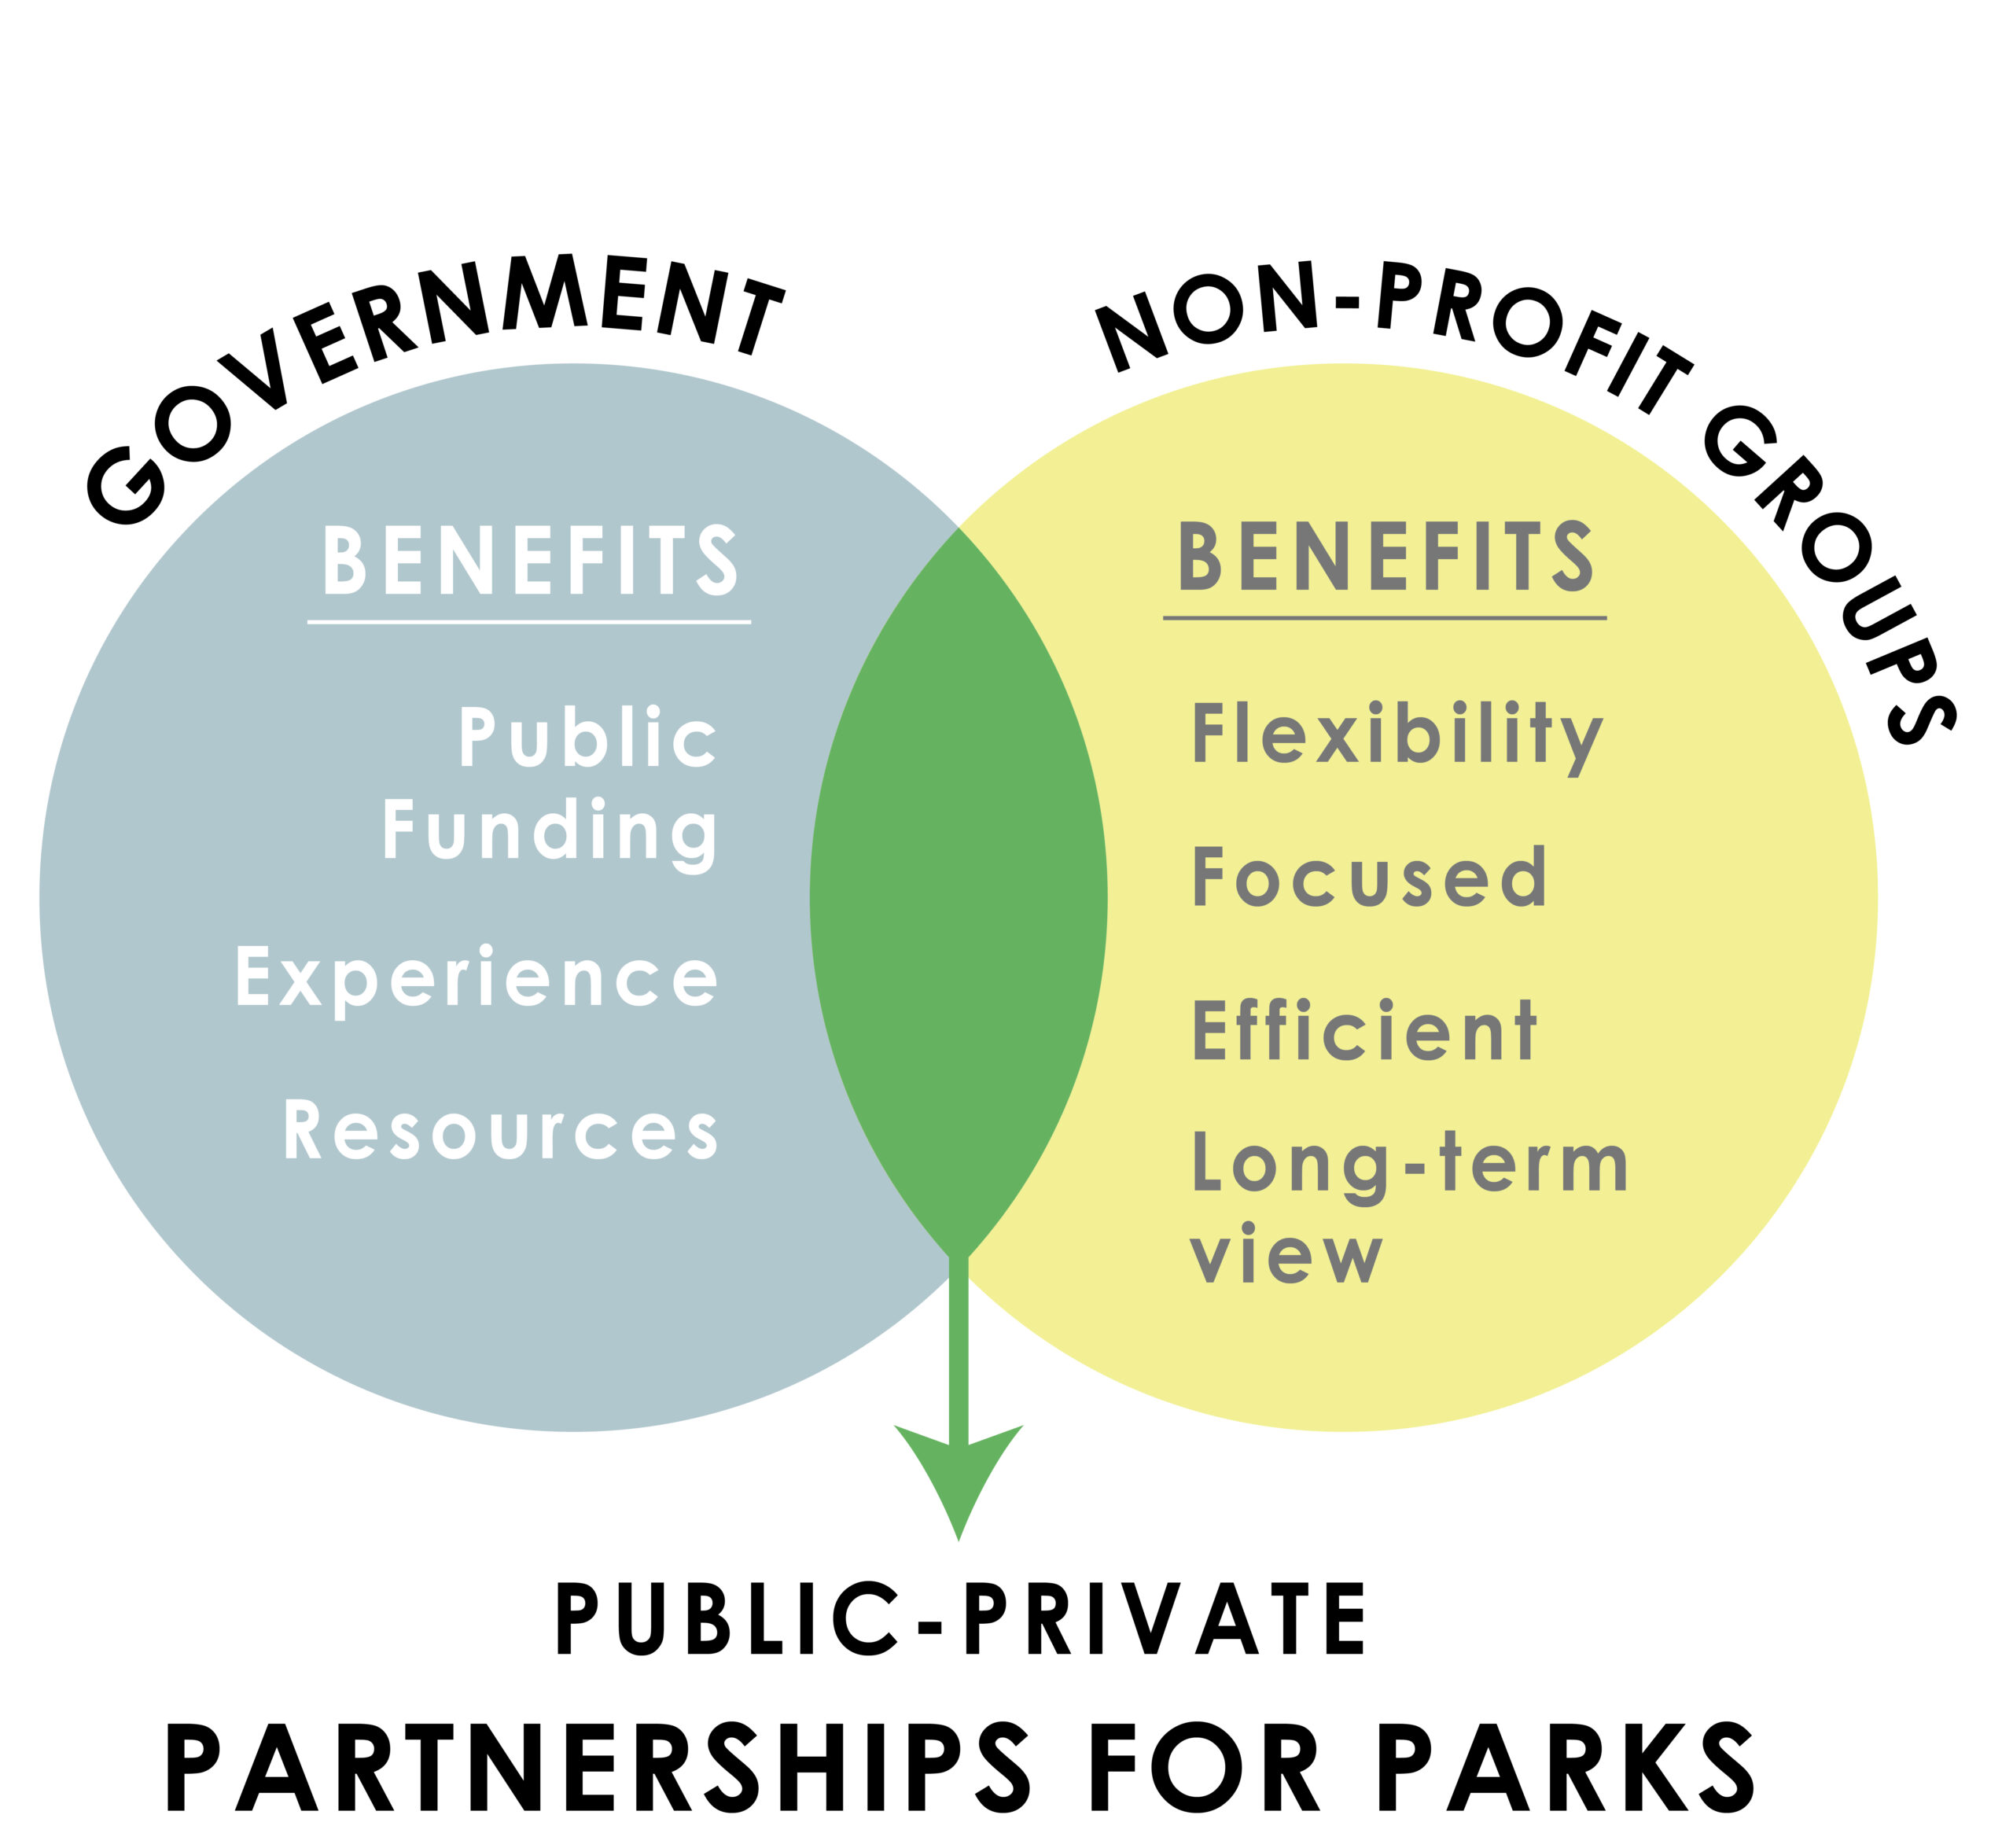 A Venn diagram showing the intersection of governments and non-profits (and the benefits they each bring) to create partnerships for parks.